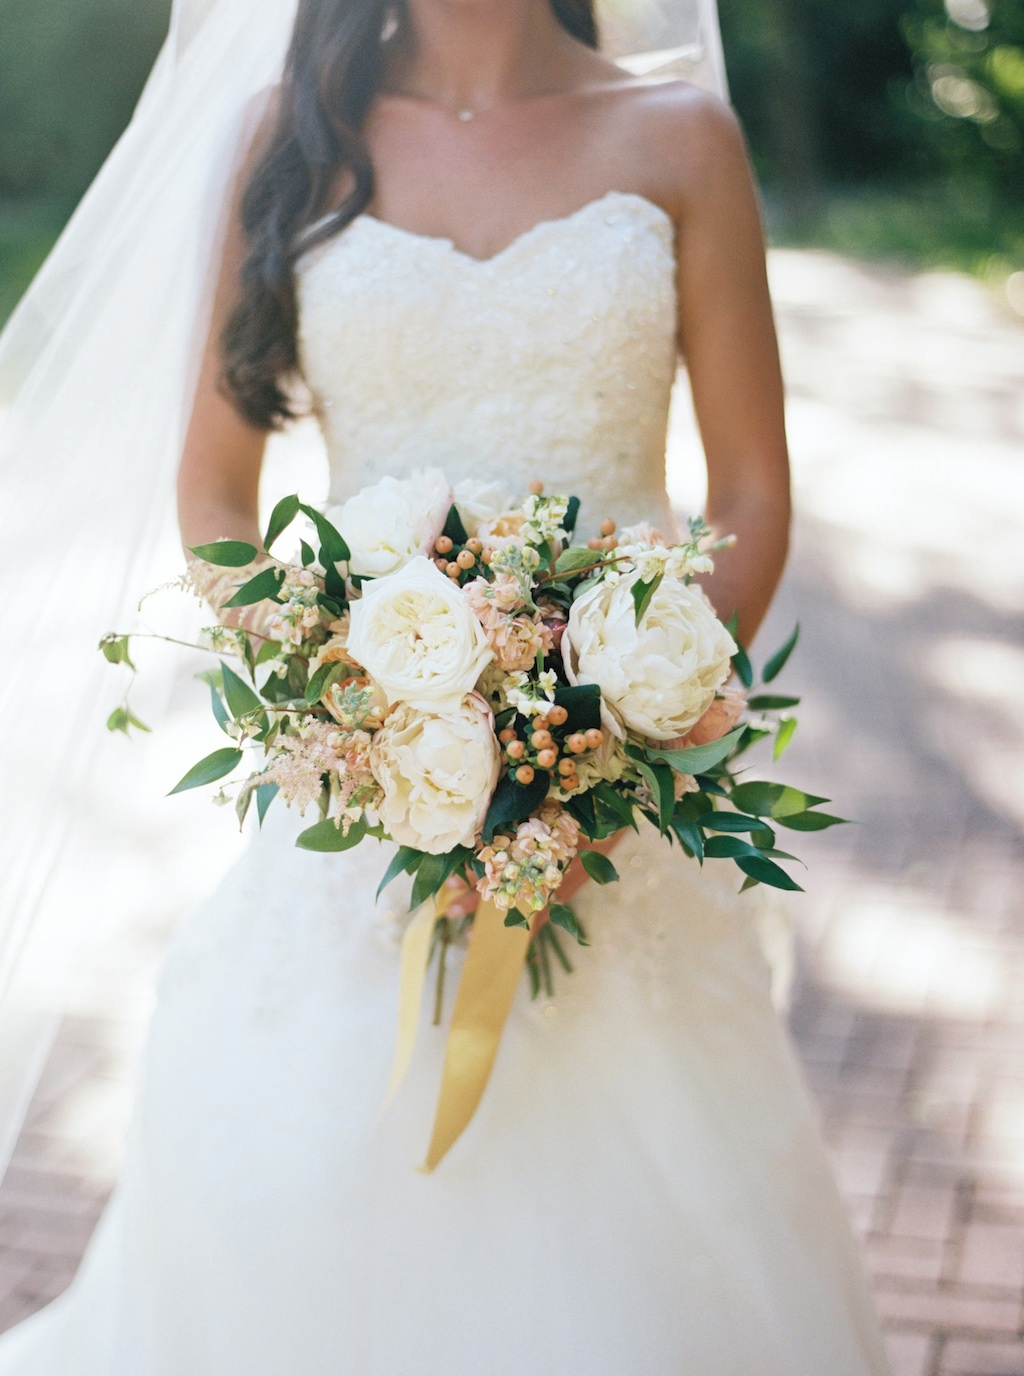 La Caille Wedding, La Caille Utah Summer Wedding, Wedding Flowers Utah Calie Rose, stunning summer wedding bouquets, blush peach ivory wedding, muted soft wedding bouquets colors, la caille utah, jacque lynn photography